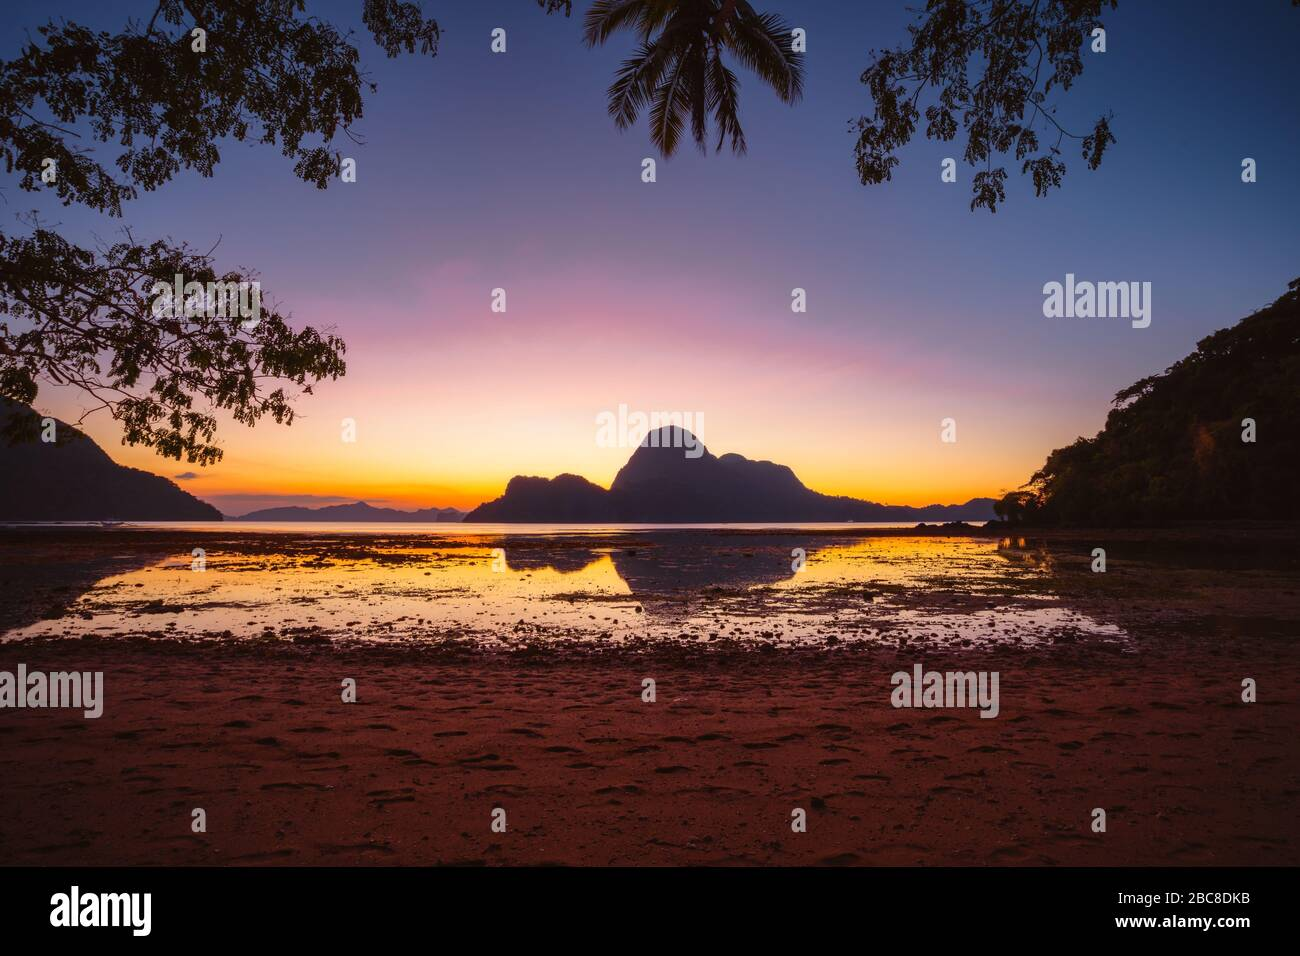 Sunset On A Tropical Island With Silhouette Of Palm Trees El Nido Bay Philippines Stock Photo Alamy